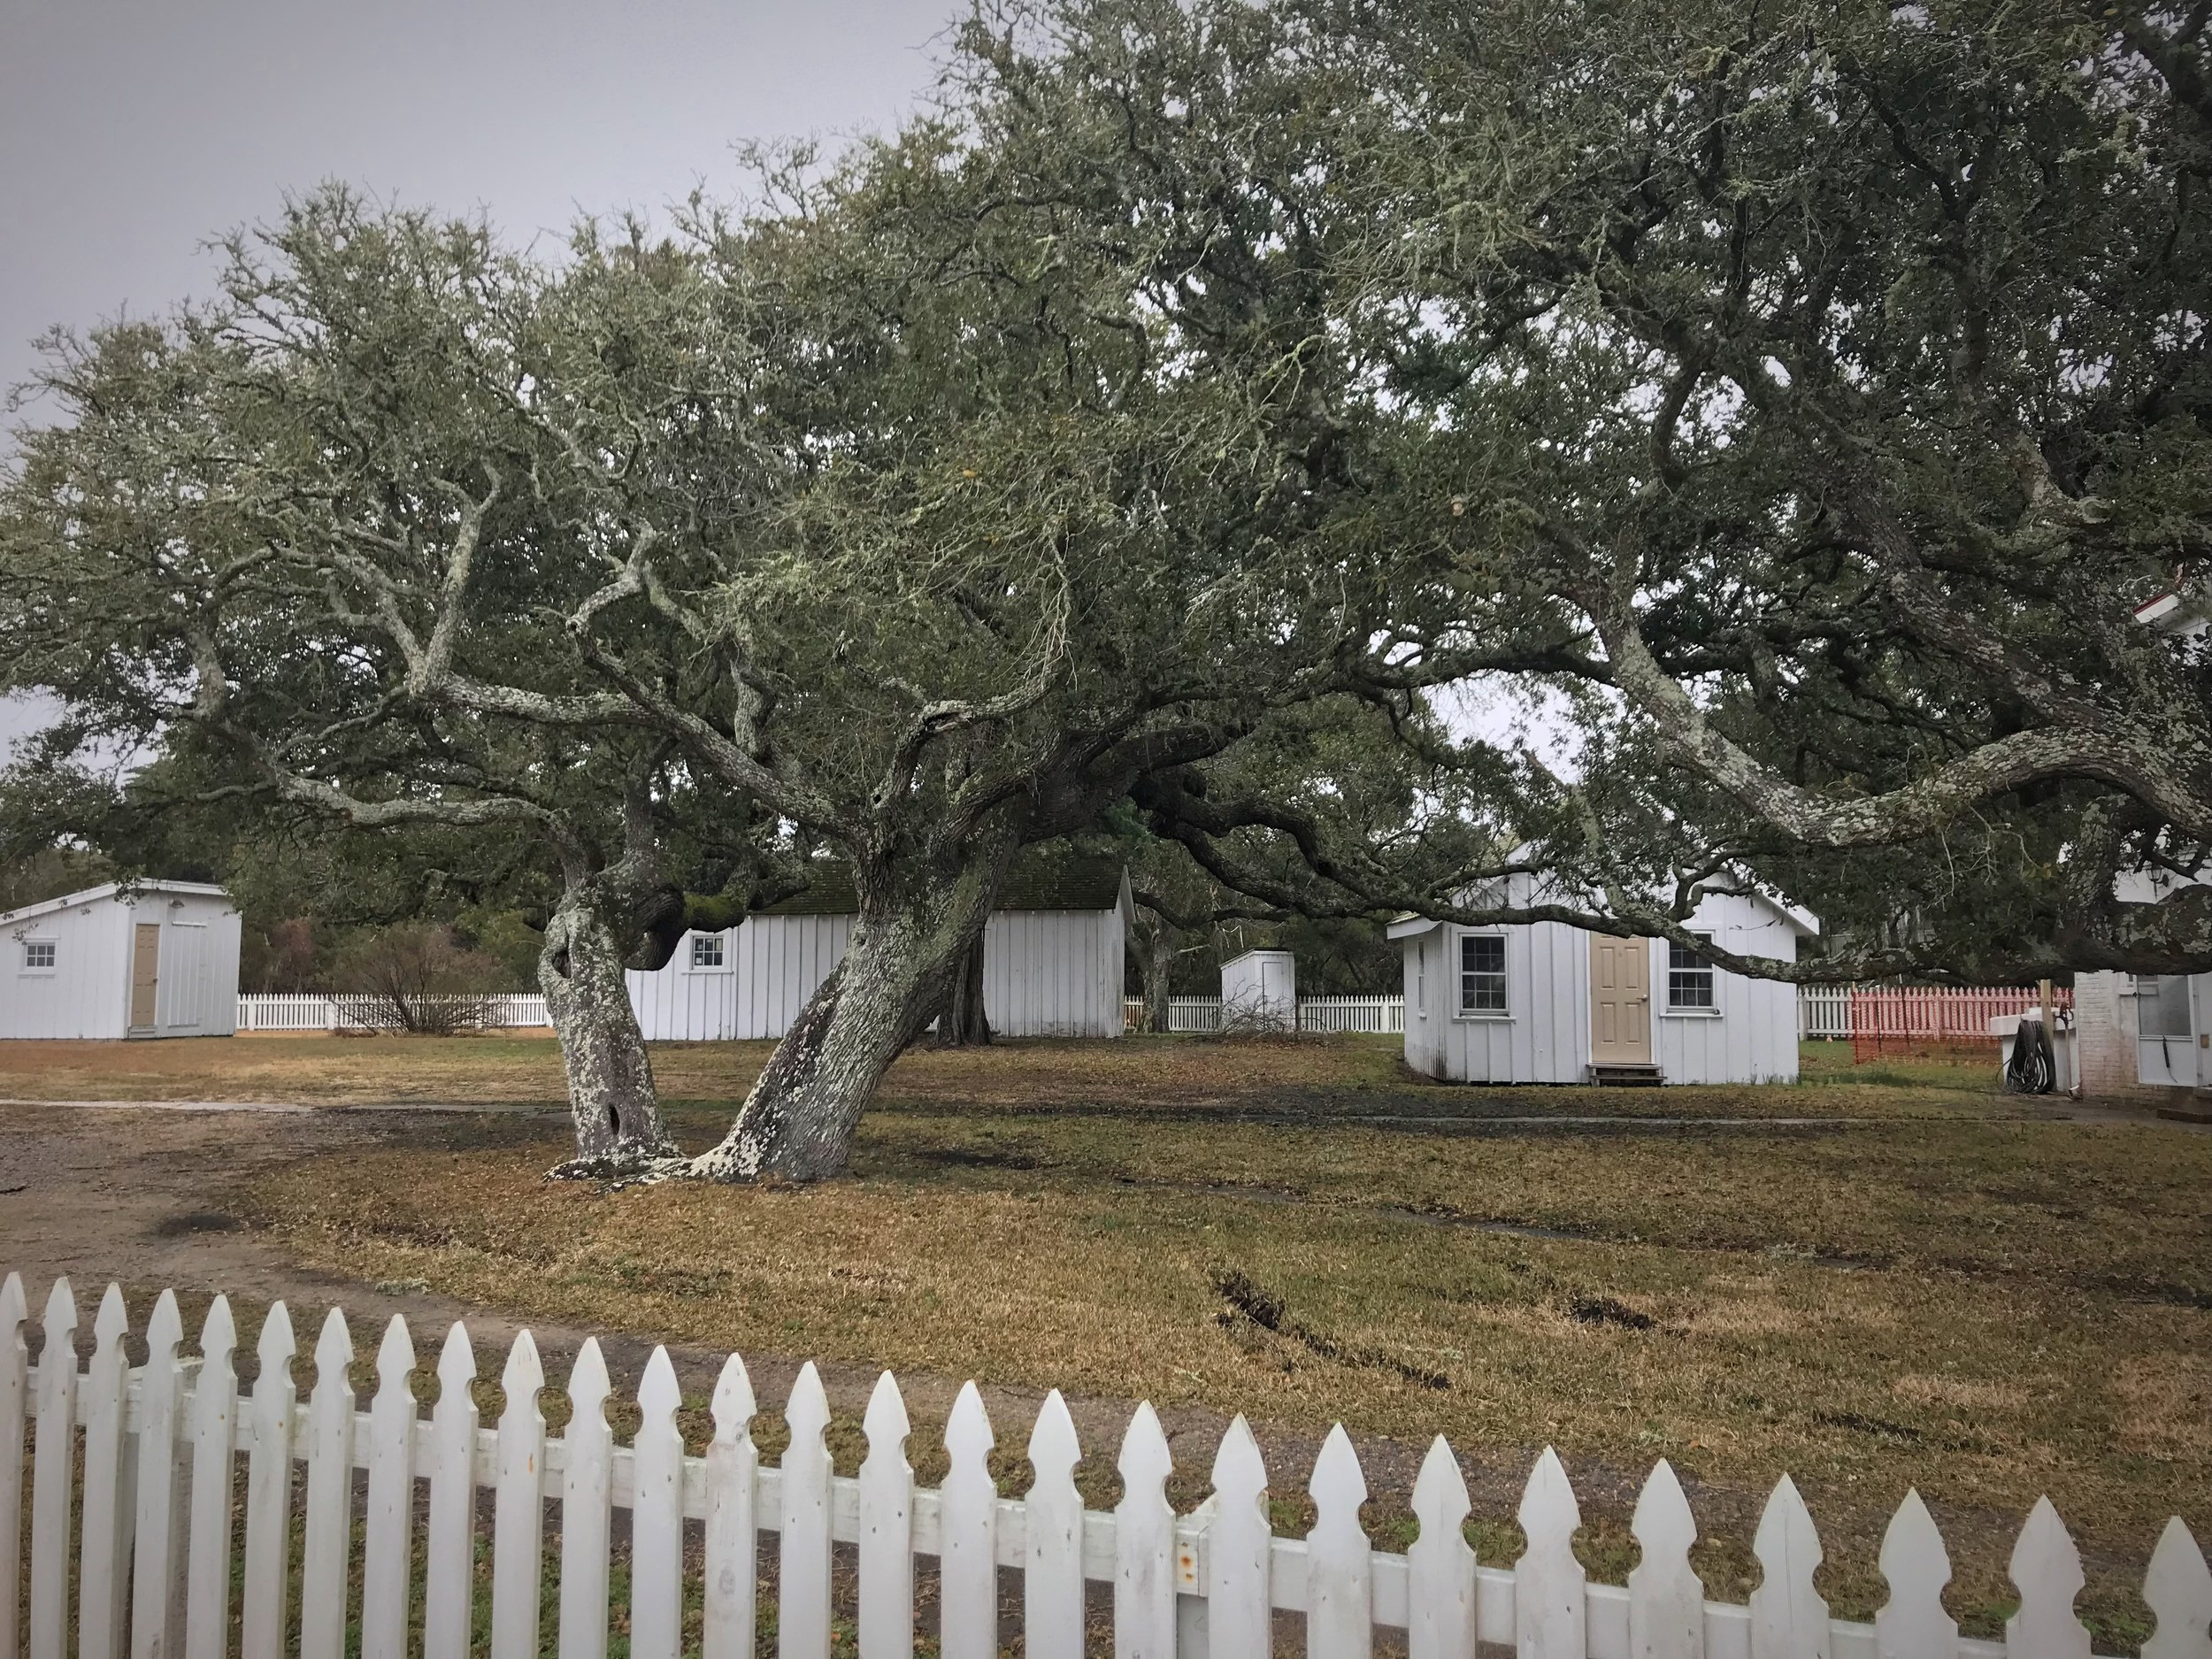 The trees on Ocracoke Island are incredible, because they are beautifully gnarled by the ocean.